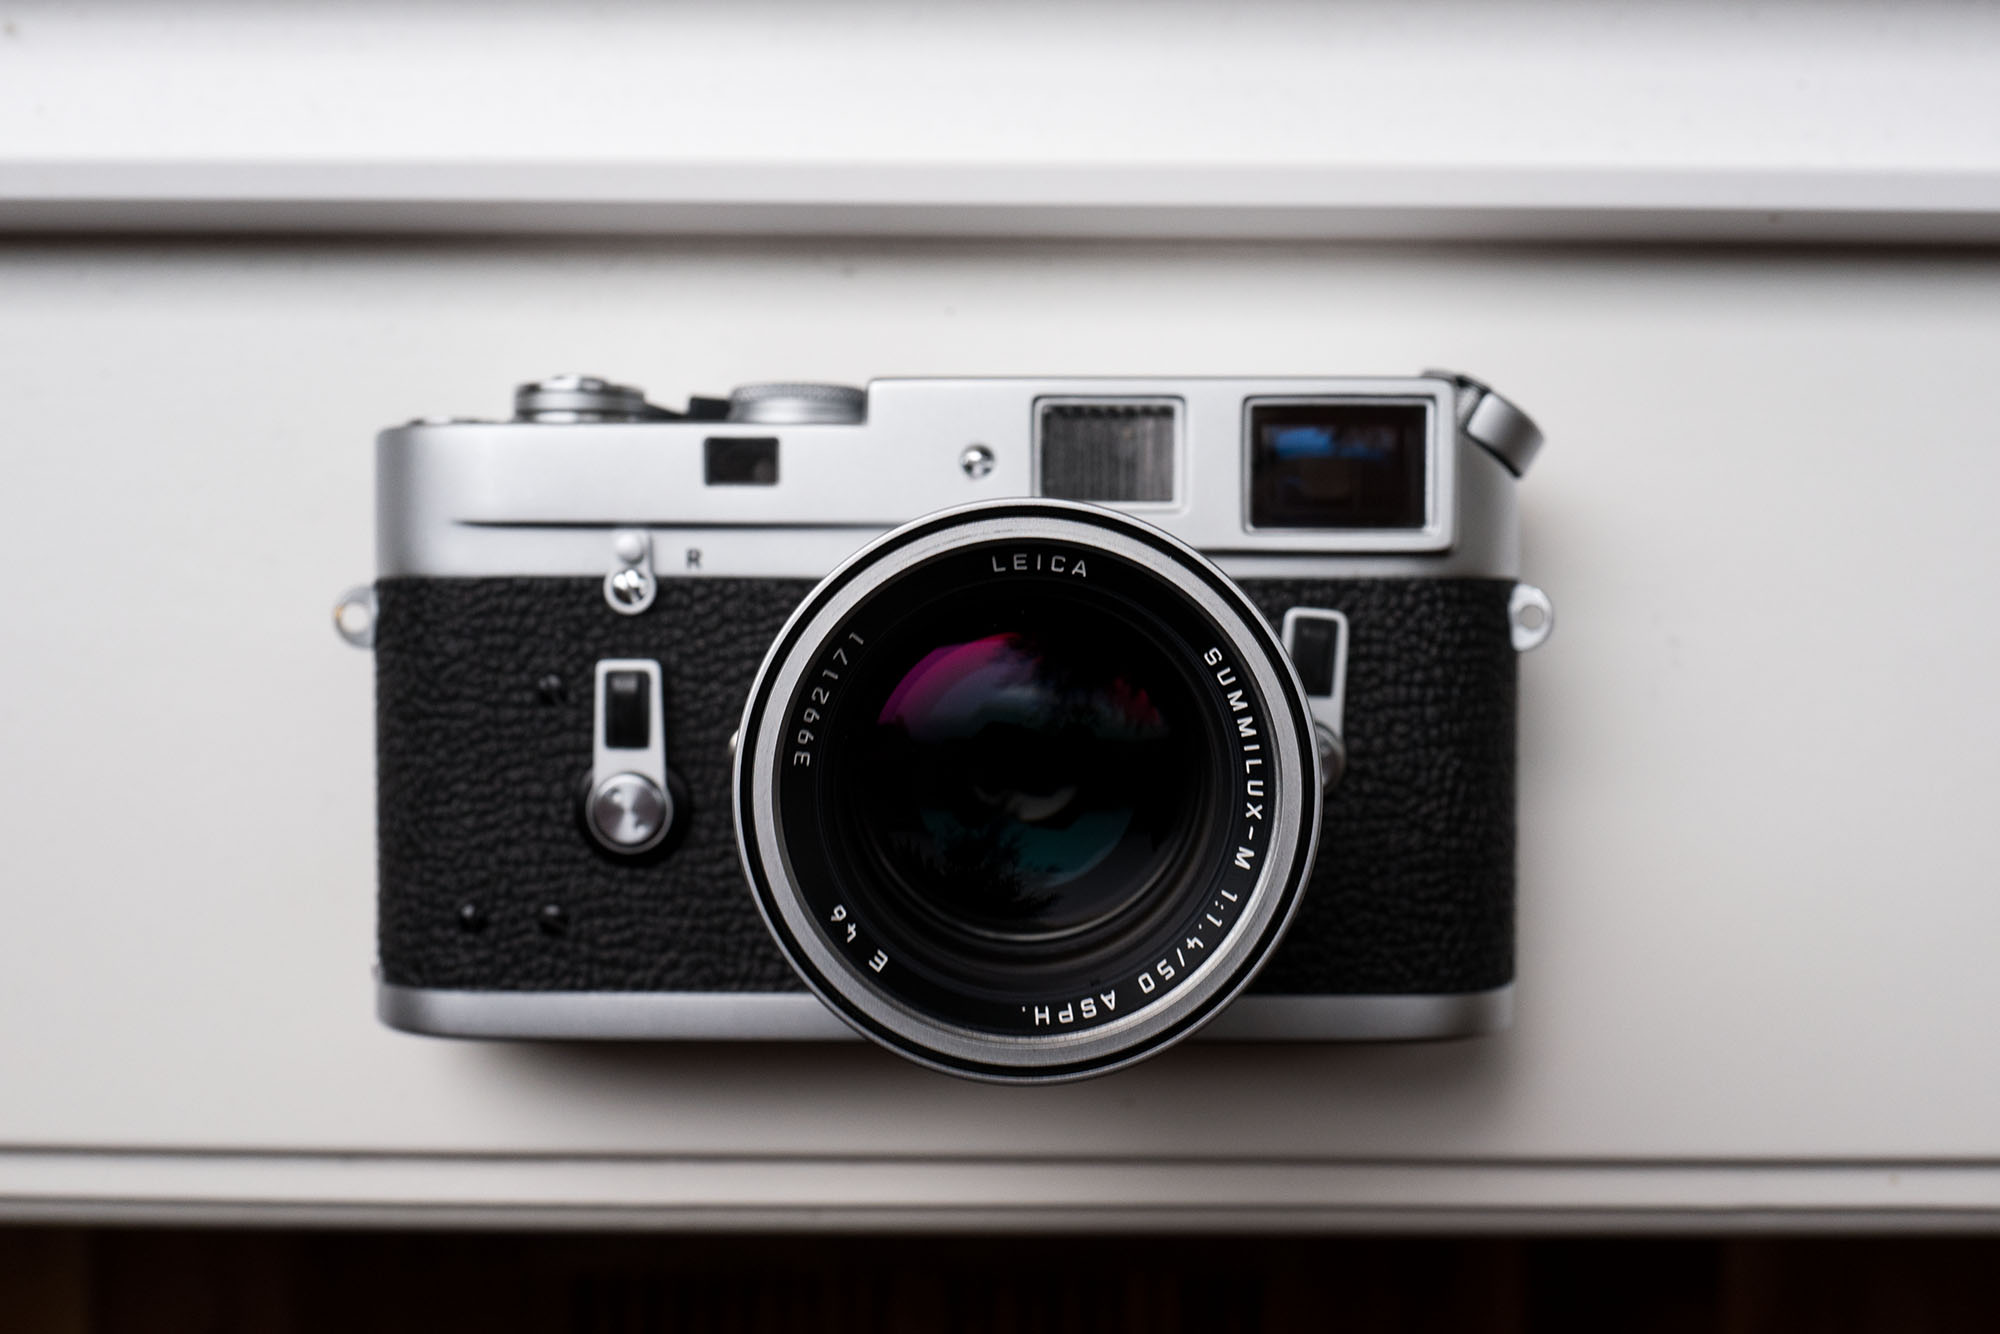 Quick Look:The Leica M4 - One roll, one week with the Leica M4